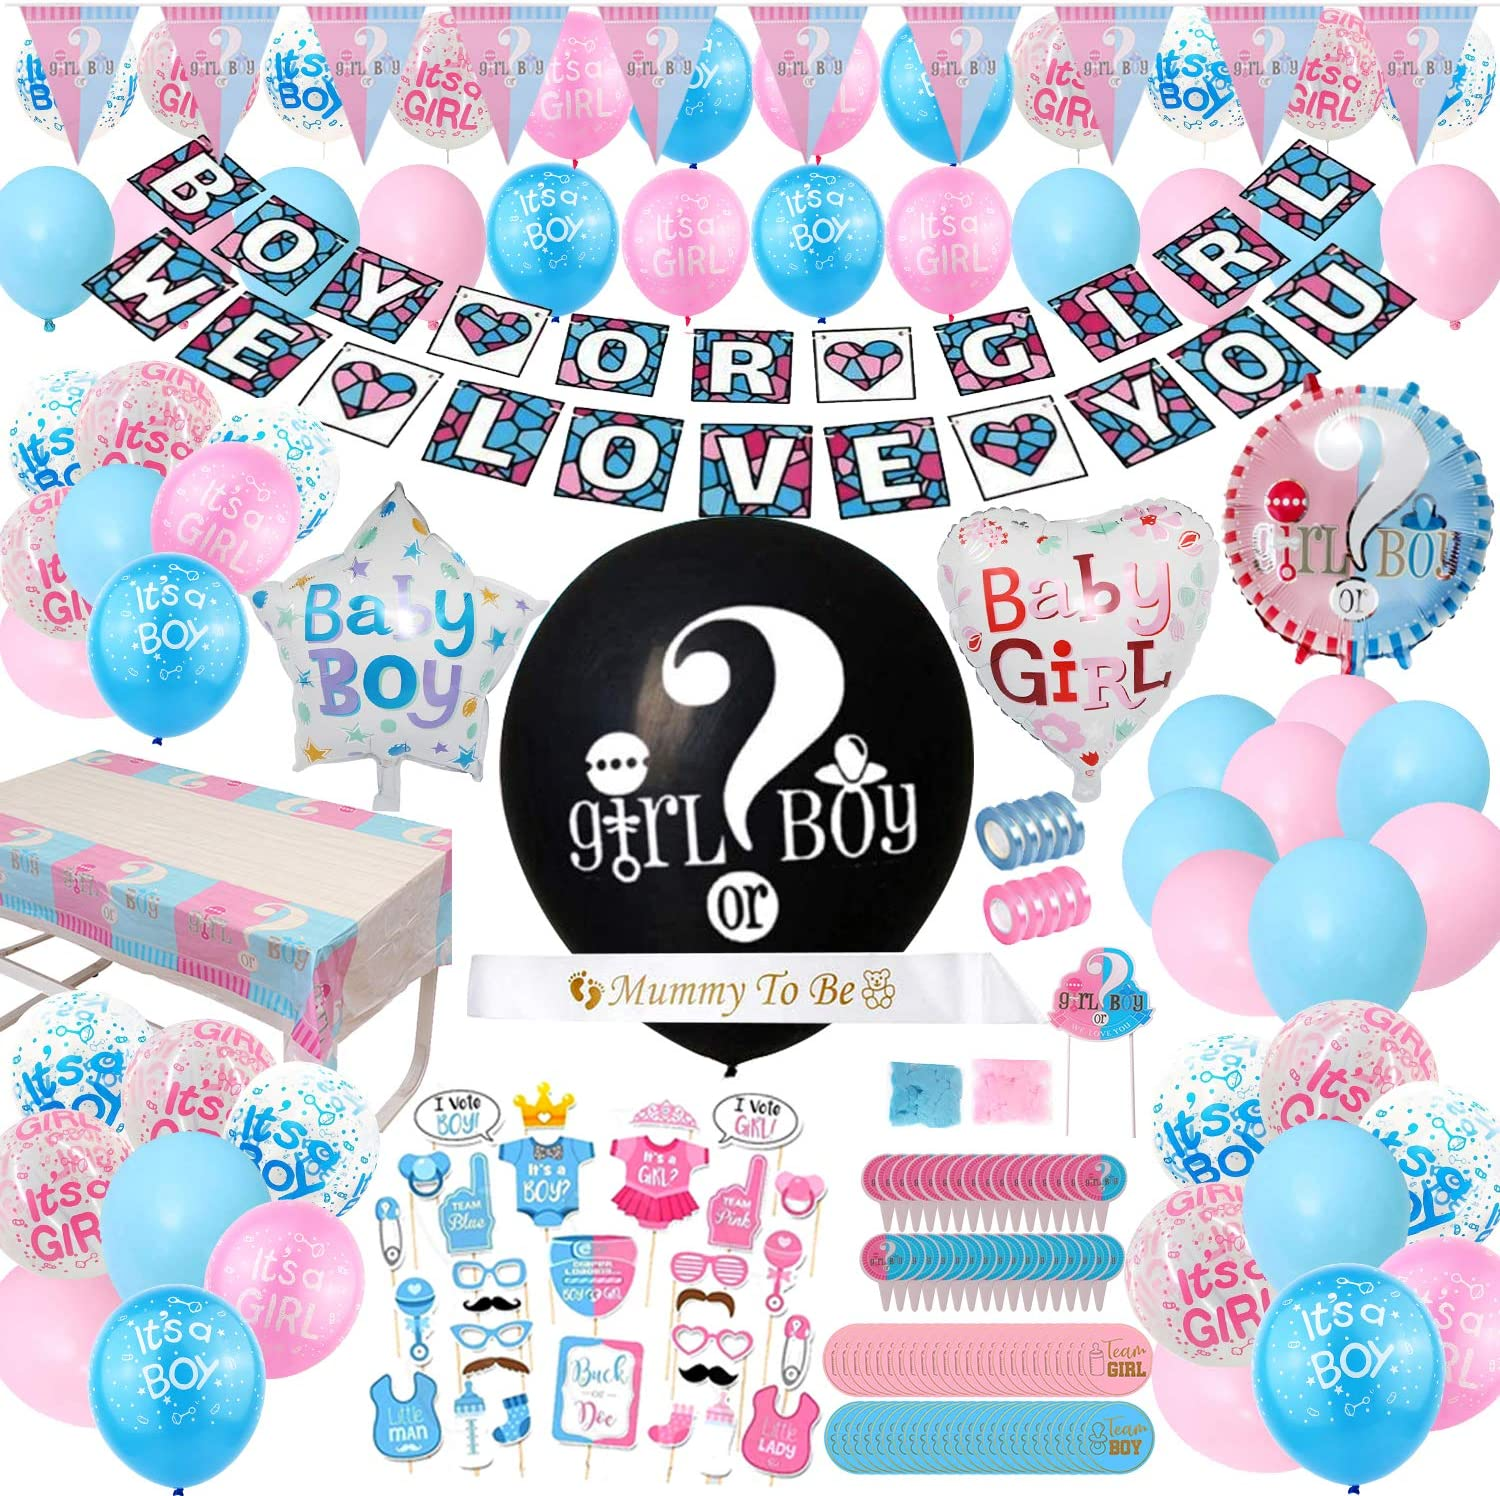 Gender Reveal Party Supplies - (200 Pieces) 36 Inch Reveal Balloon, Boy or Girl Banner, Mommy To Be Sash, Baby Shower Decorations, Foil Balloons and Boy Or Girl Balloons, Team Girl & Boy Stickers, Cake Topper Much More